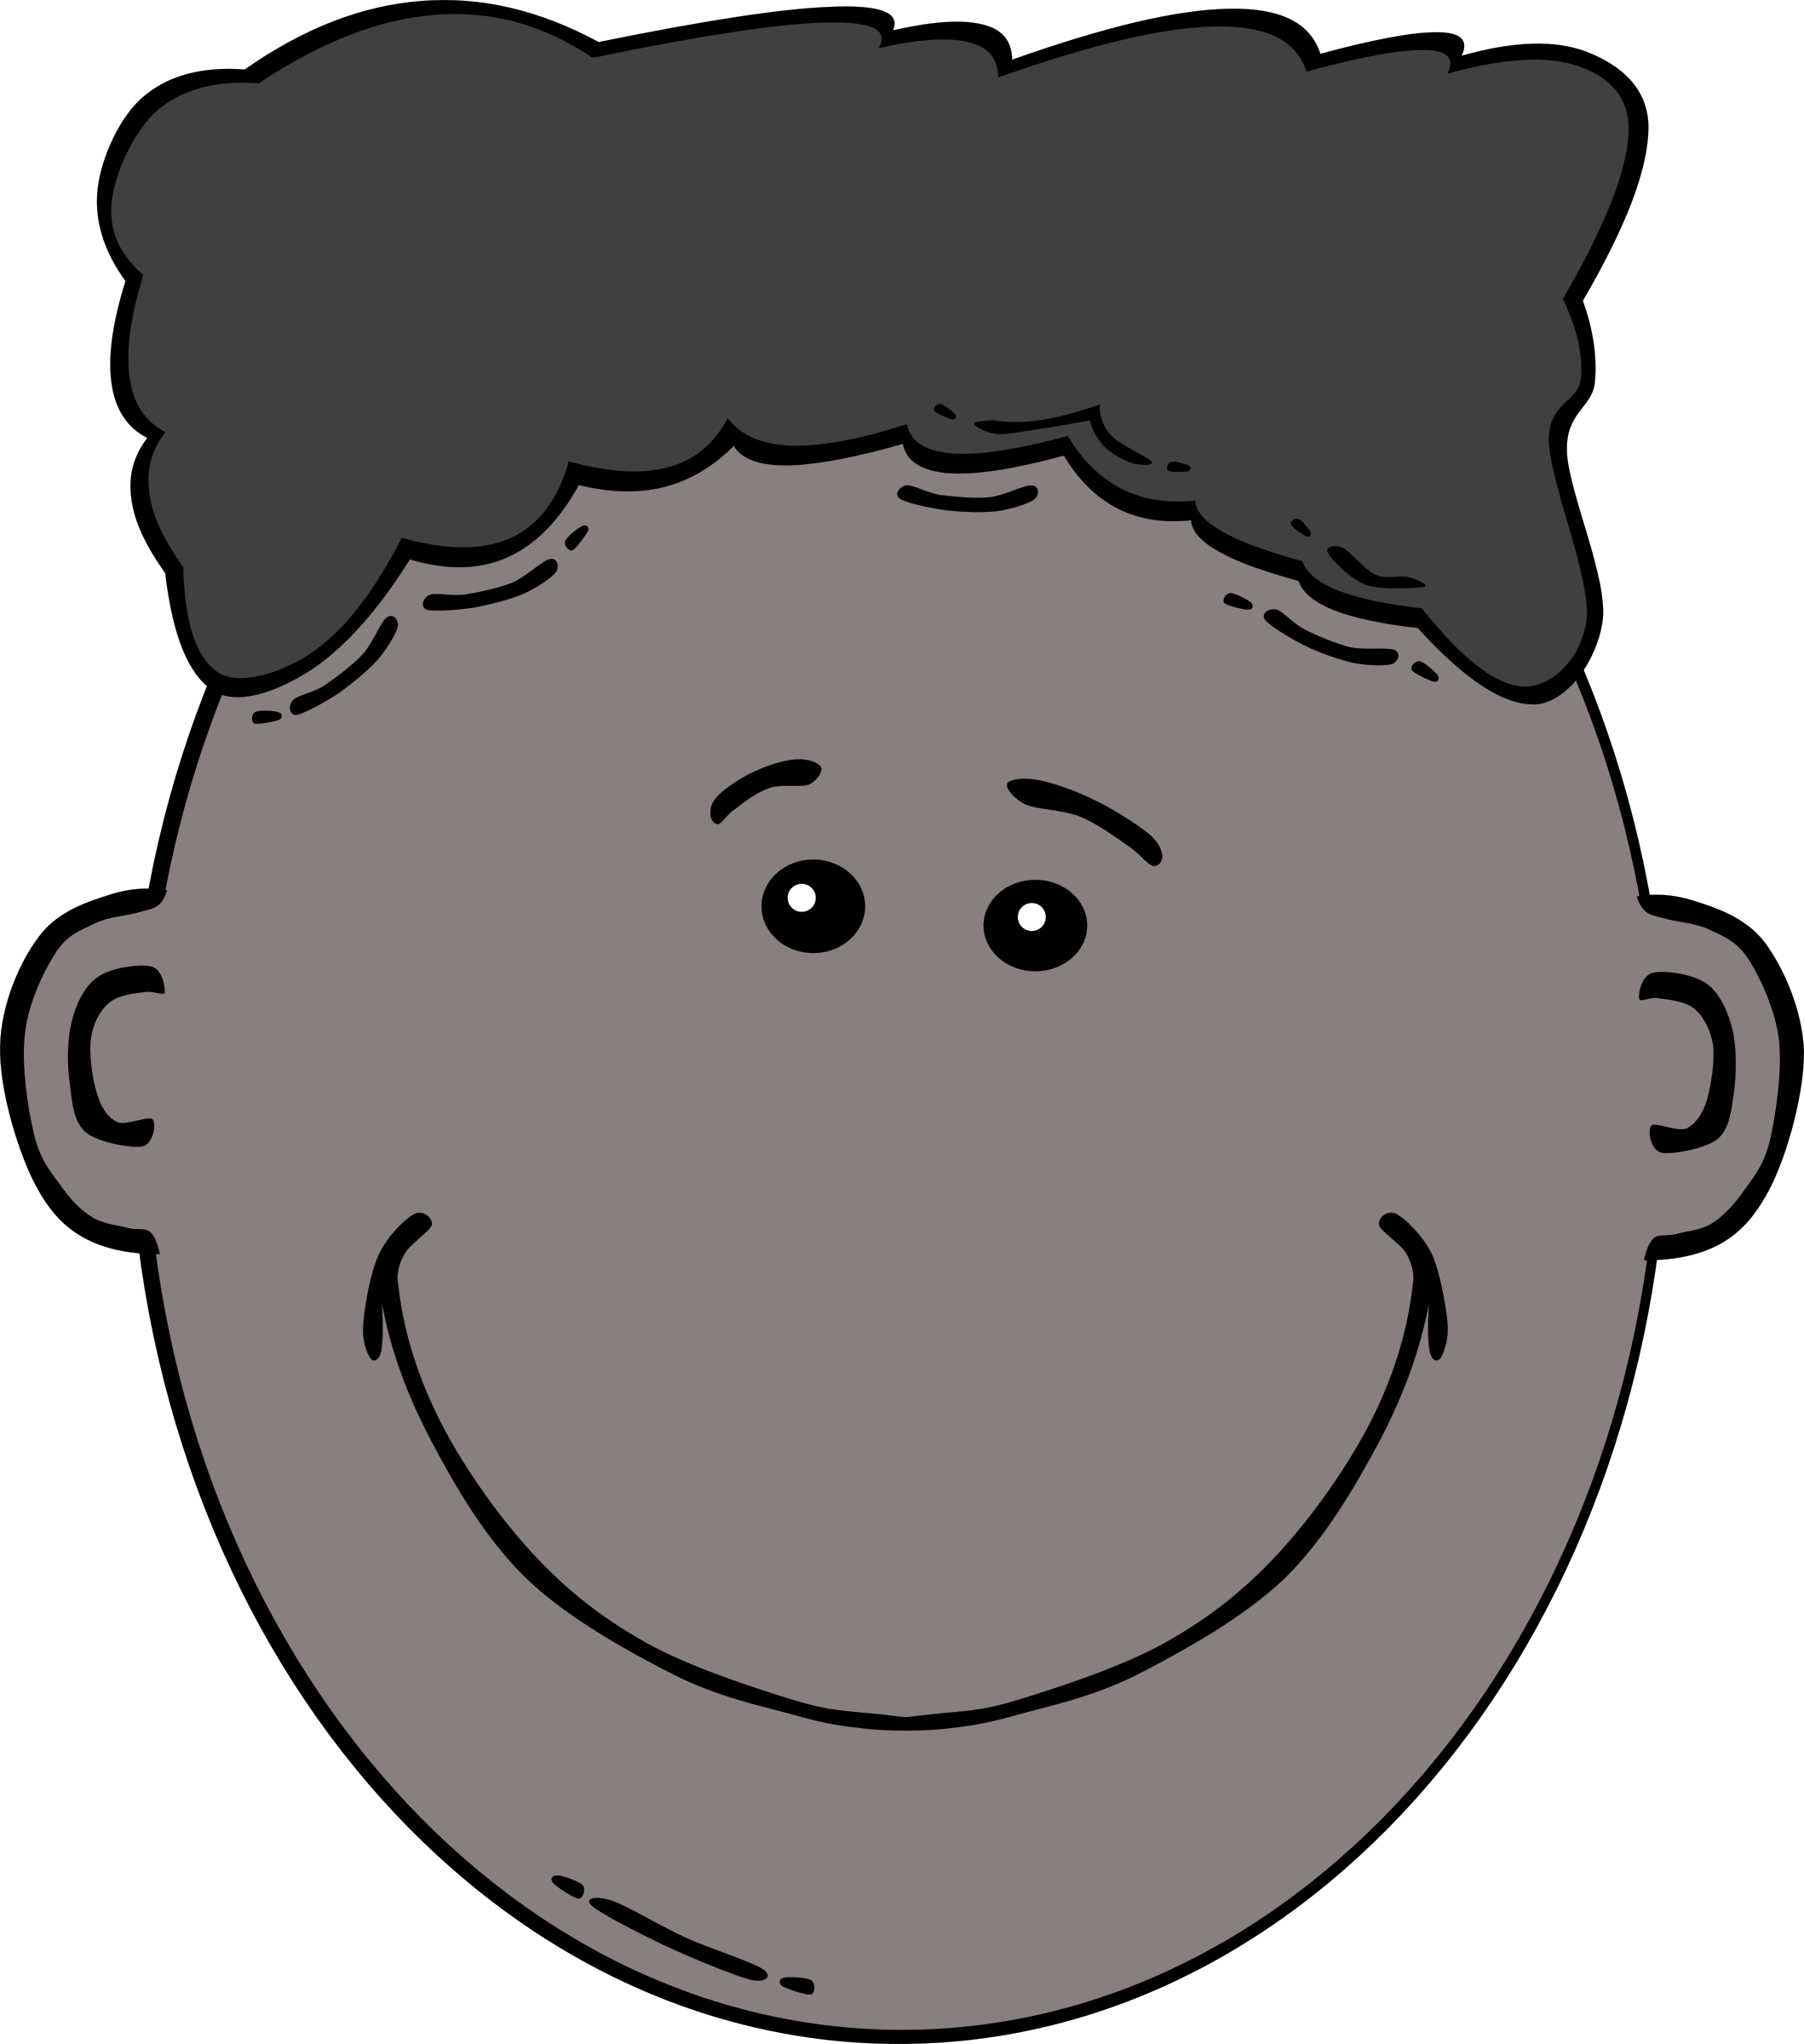 Boy cartoon big image. Son clipart face to face clip library stock